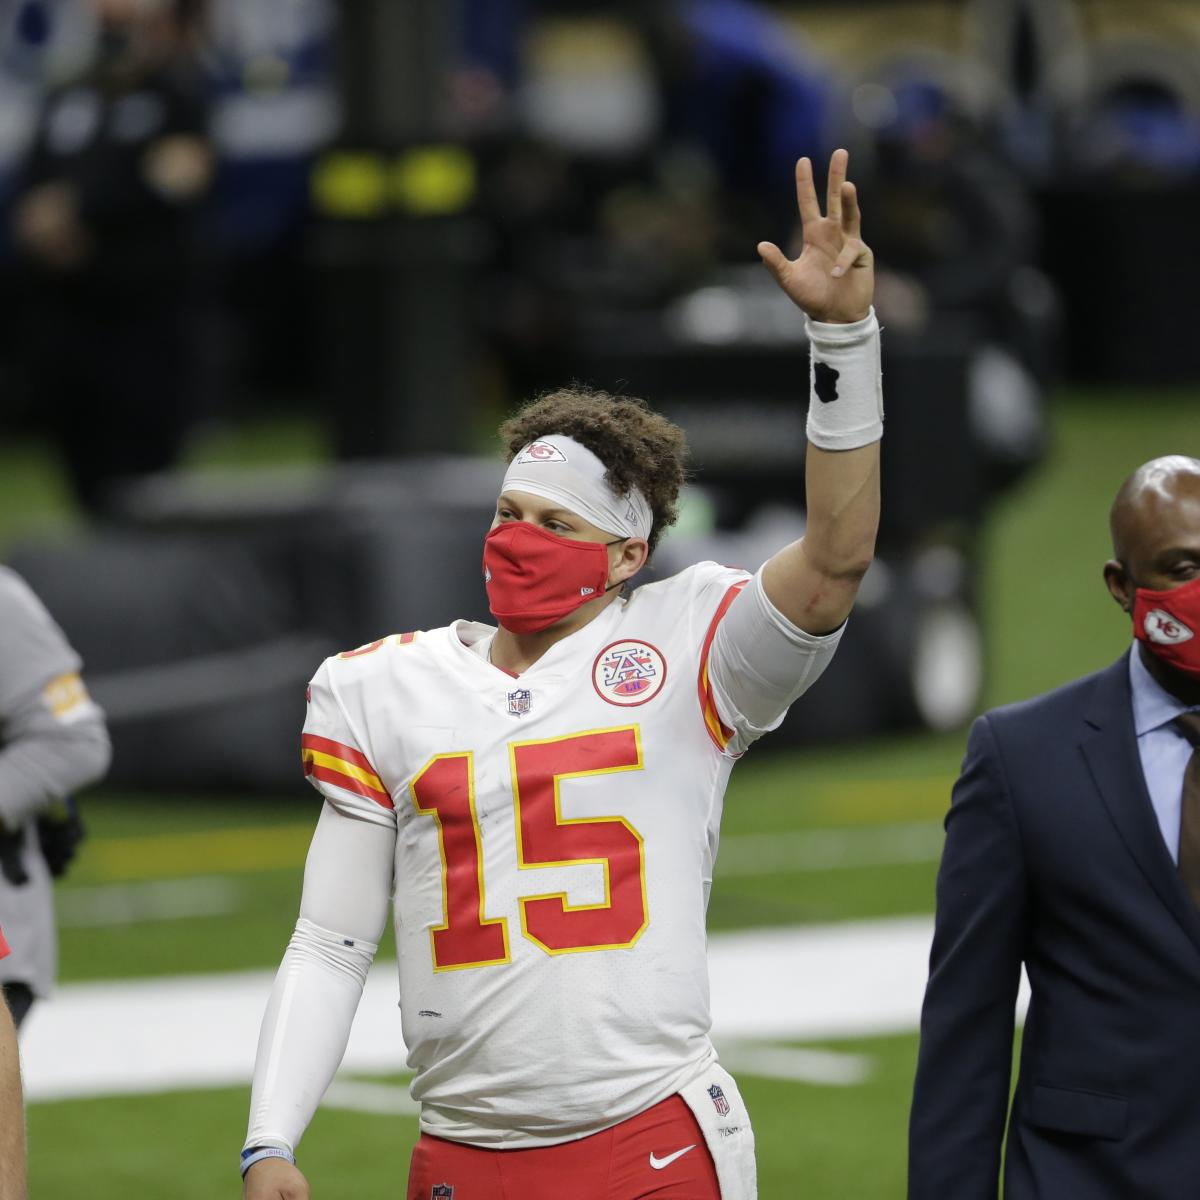 Patrick Mahomes Jokes About Christmas Video of Him Singing 'Rudolph' as a Child thumbnail